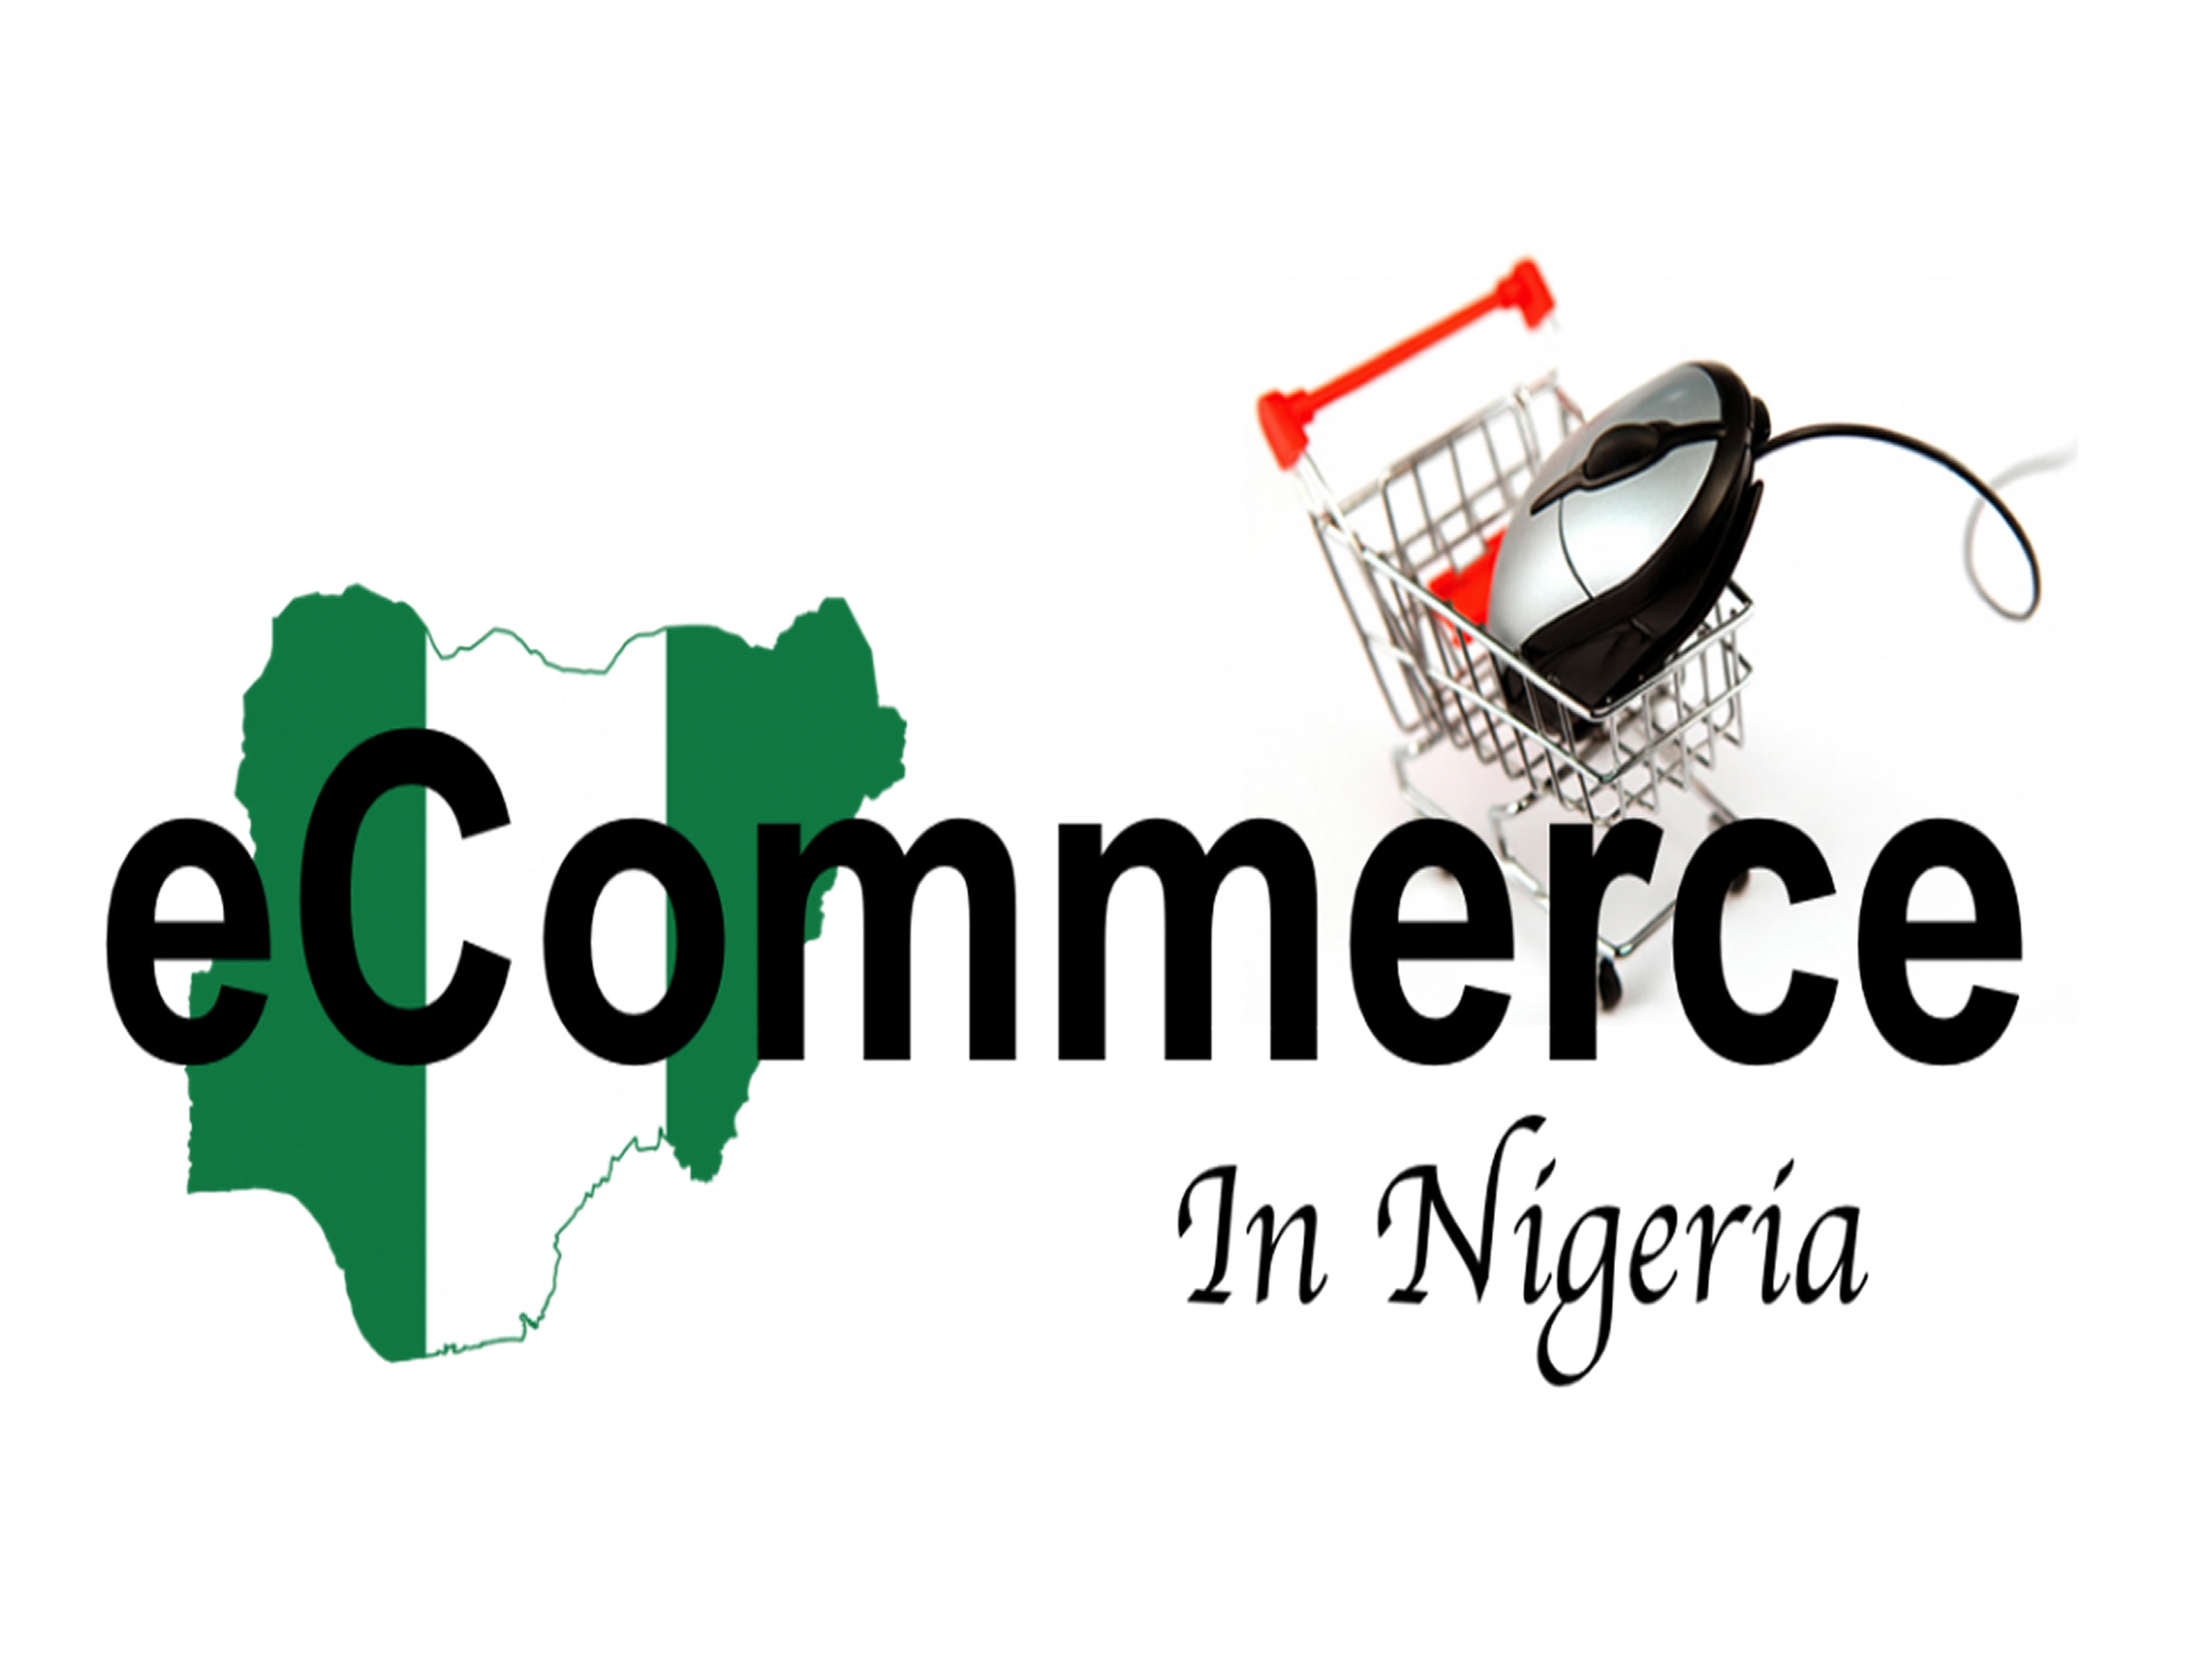 10 Years On – Nigeria's E-commerce Market Value to Hit N15.45tn